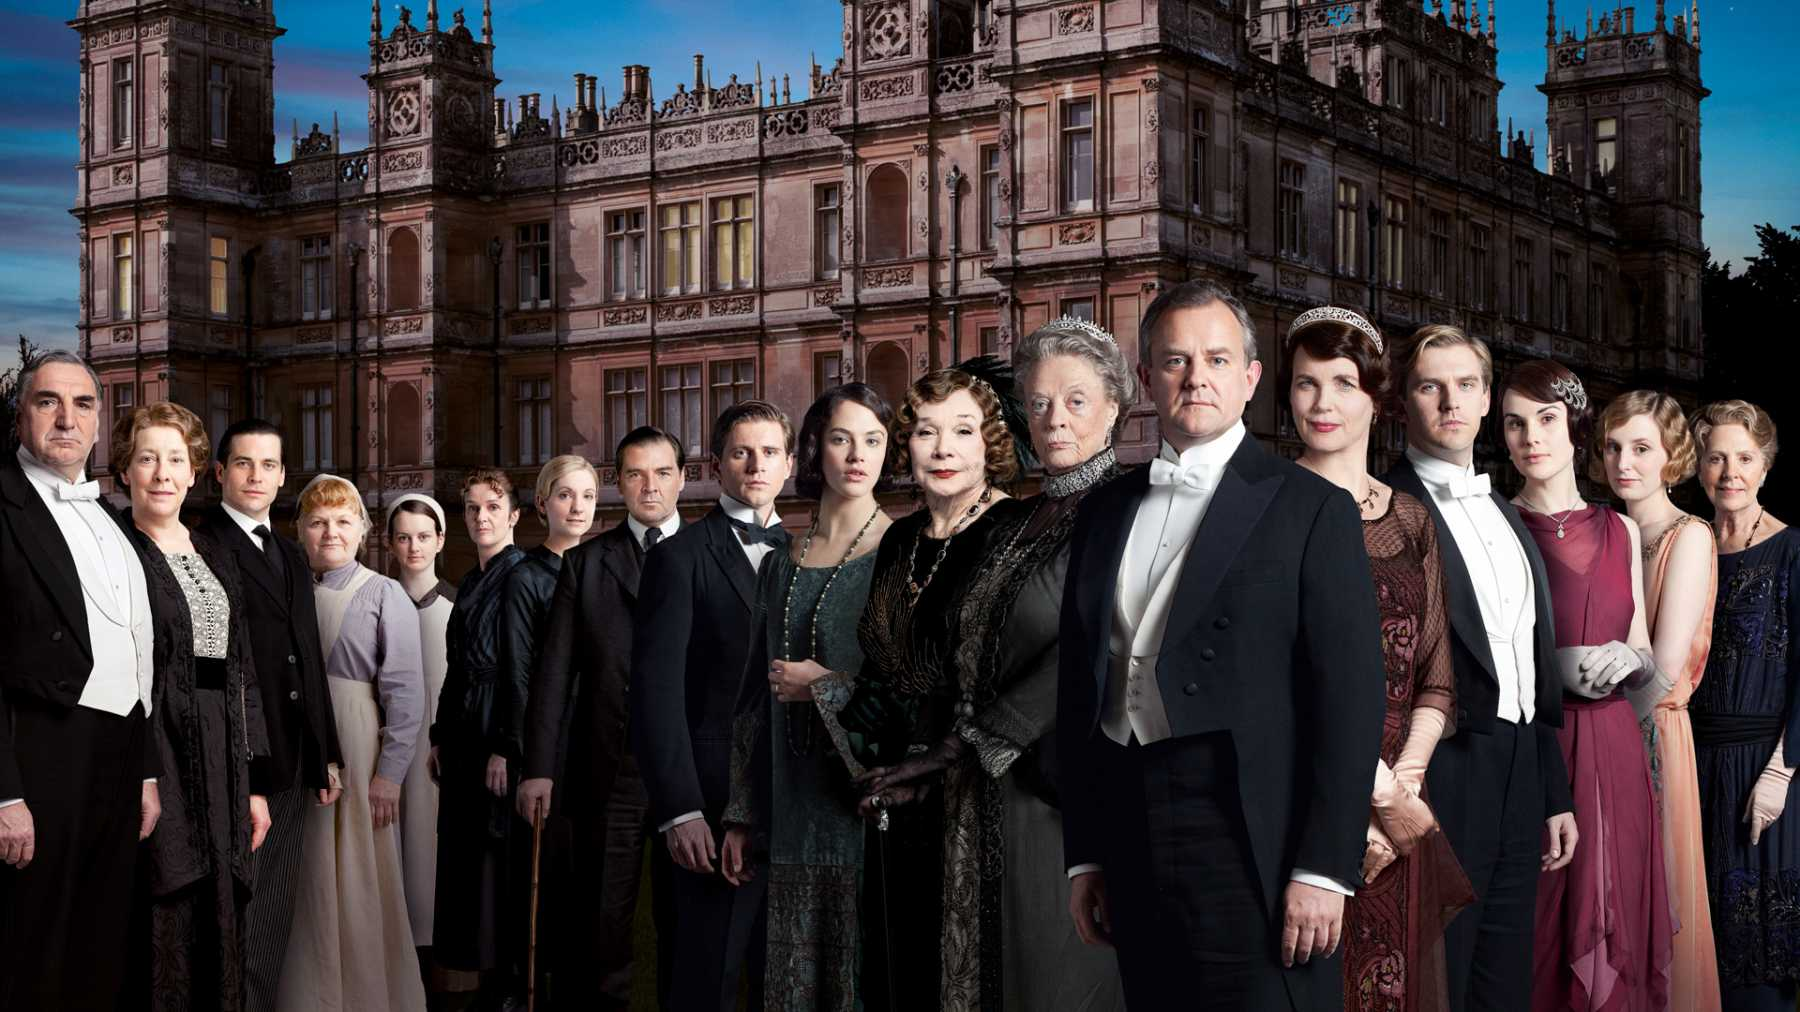 'Downton Abbey' Meets 'Harry Potter': What If Dowager Countess Grantham Attended Hogwarts?